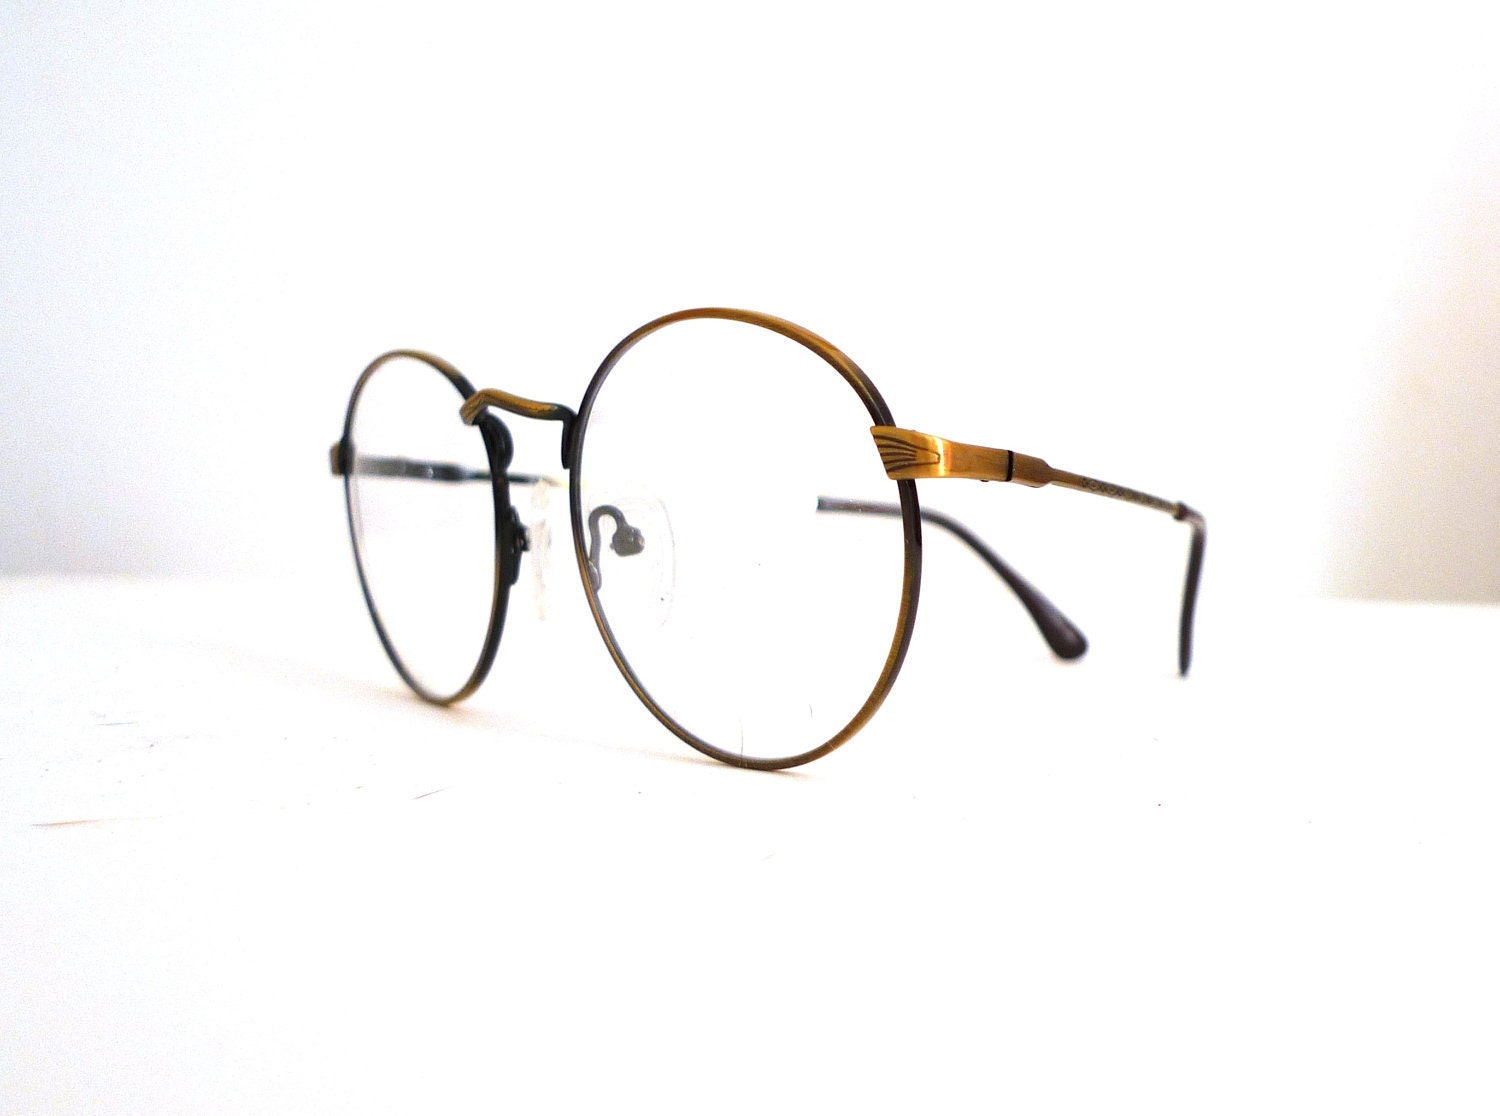 NOS Lennon Eyeglass Frames / Round Sunglasses // by ...